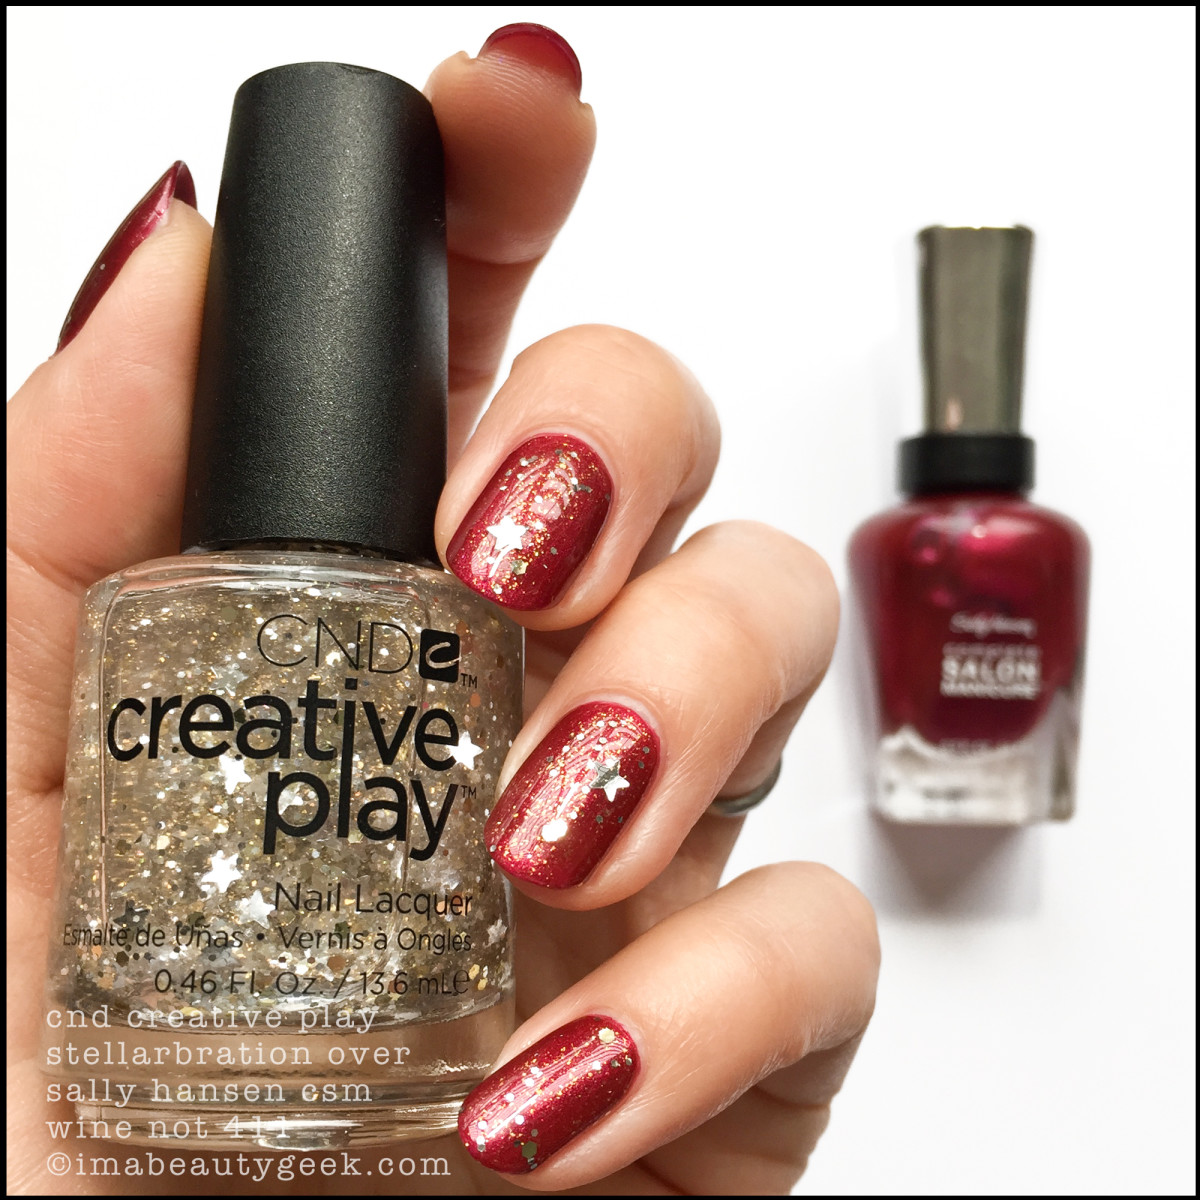 CND Creative Play Stellarbration over Sally Hansen Wine Not